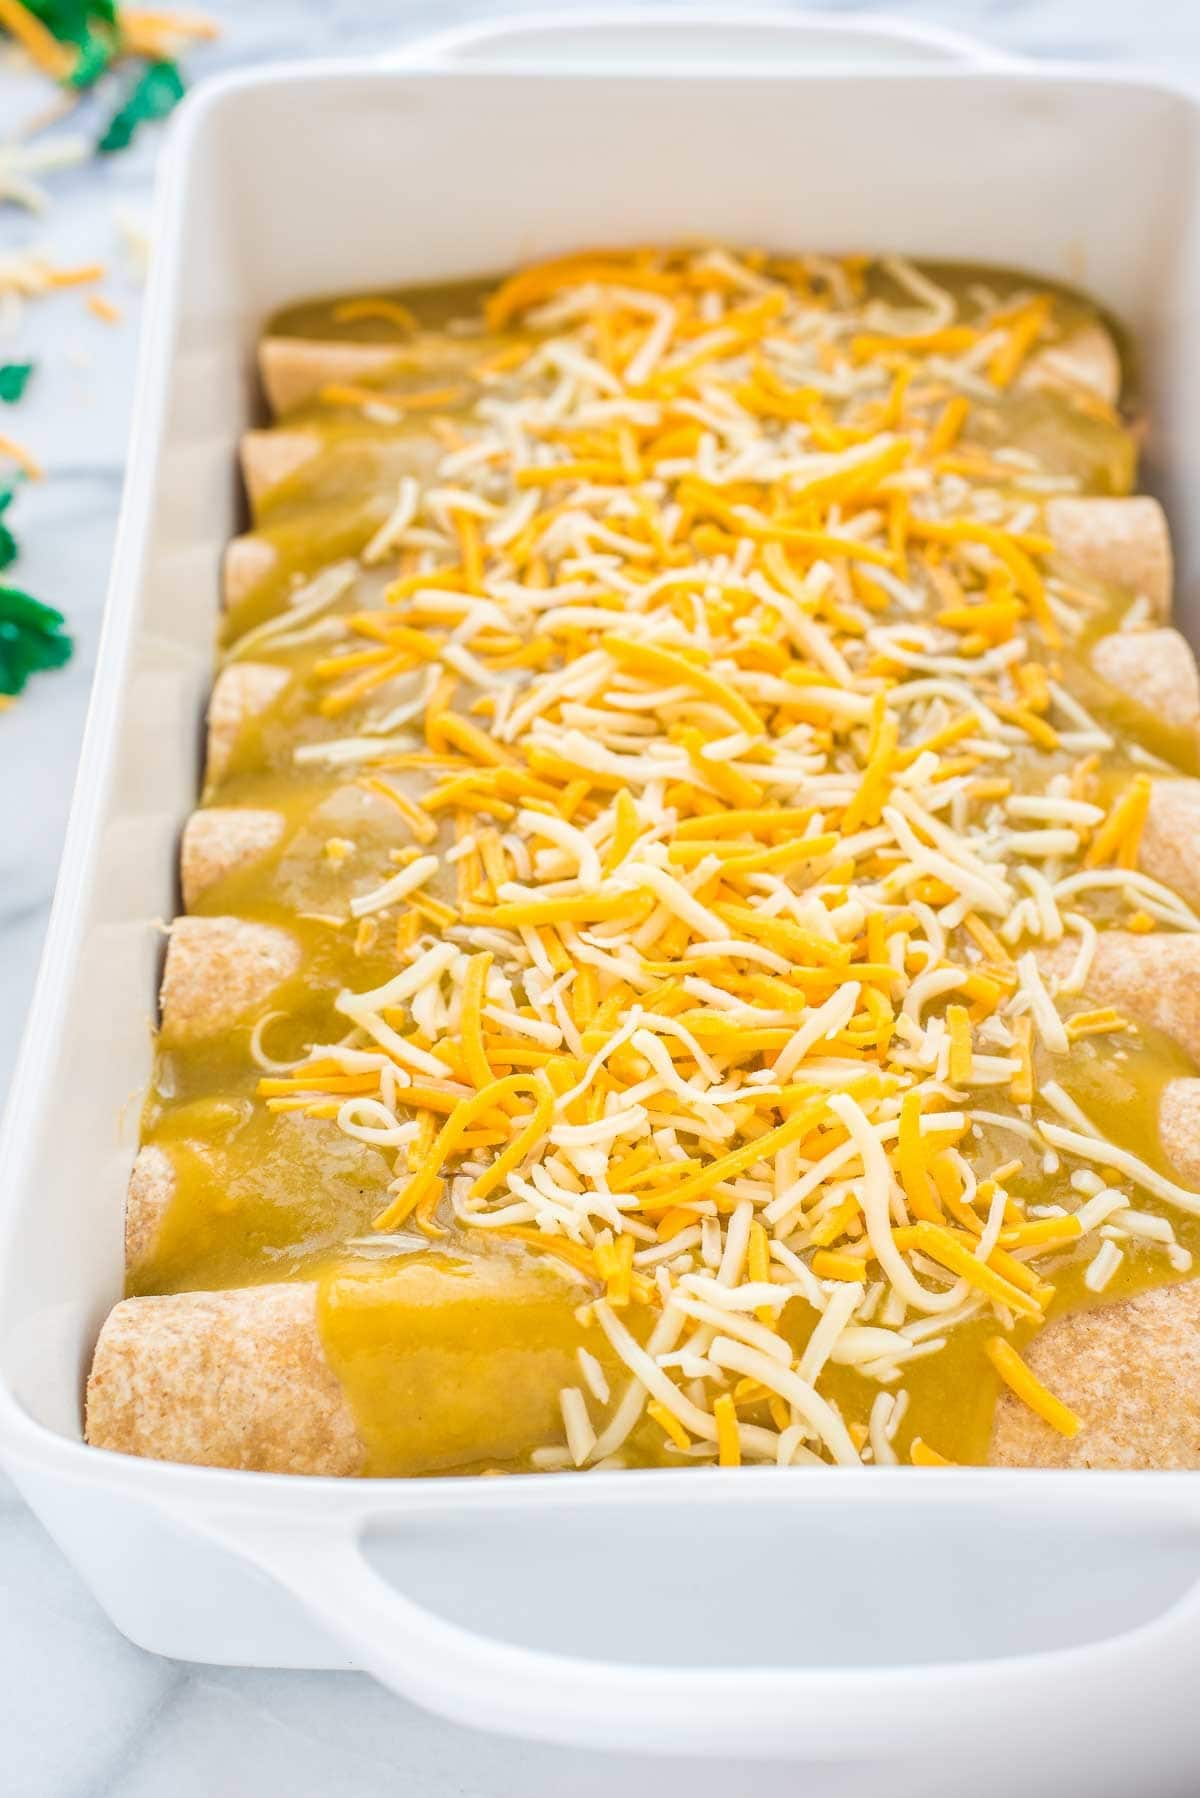 Chile Verde Chicken Enchiladas. Easy, creamy, and delicious! Recipe at wellplated.com | @wellplated